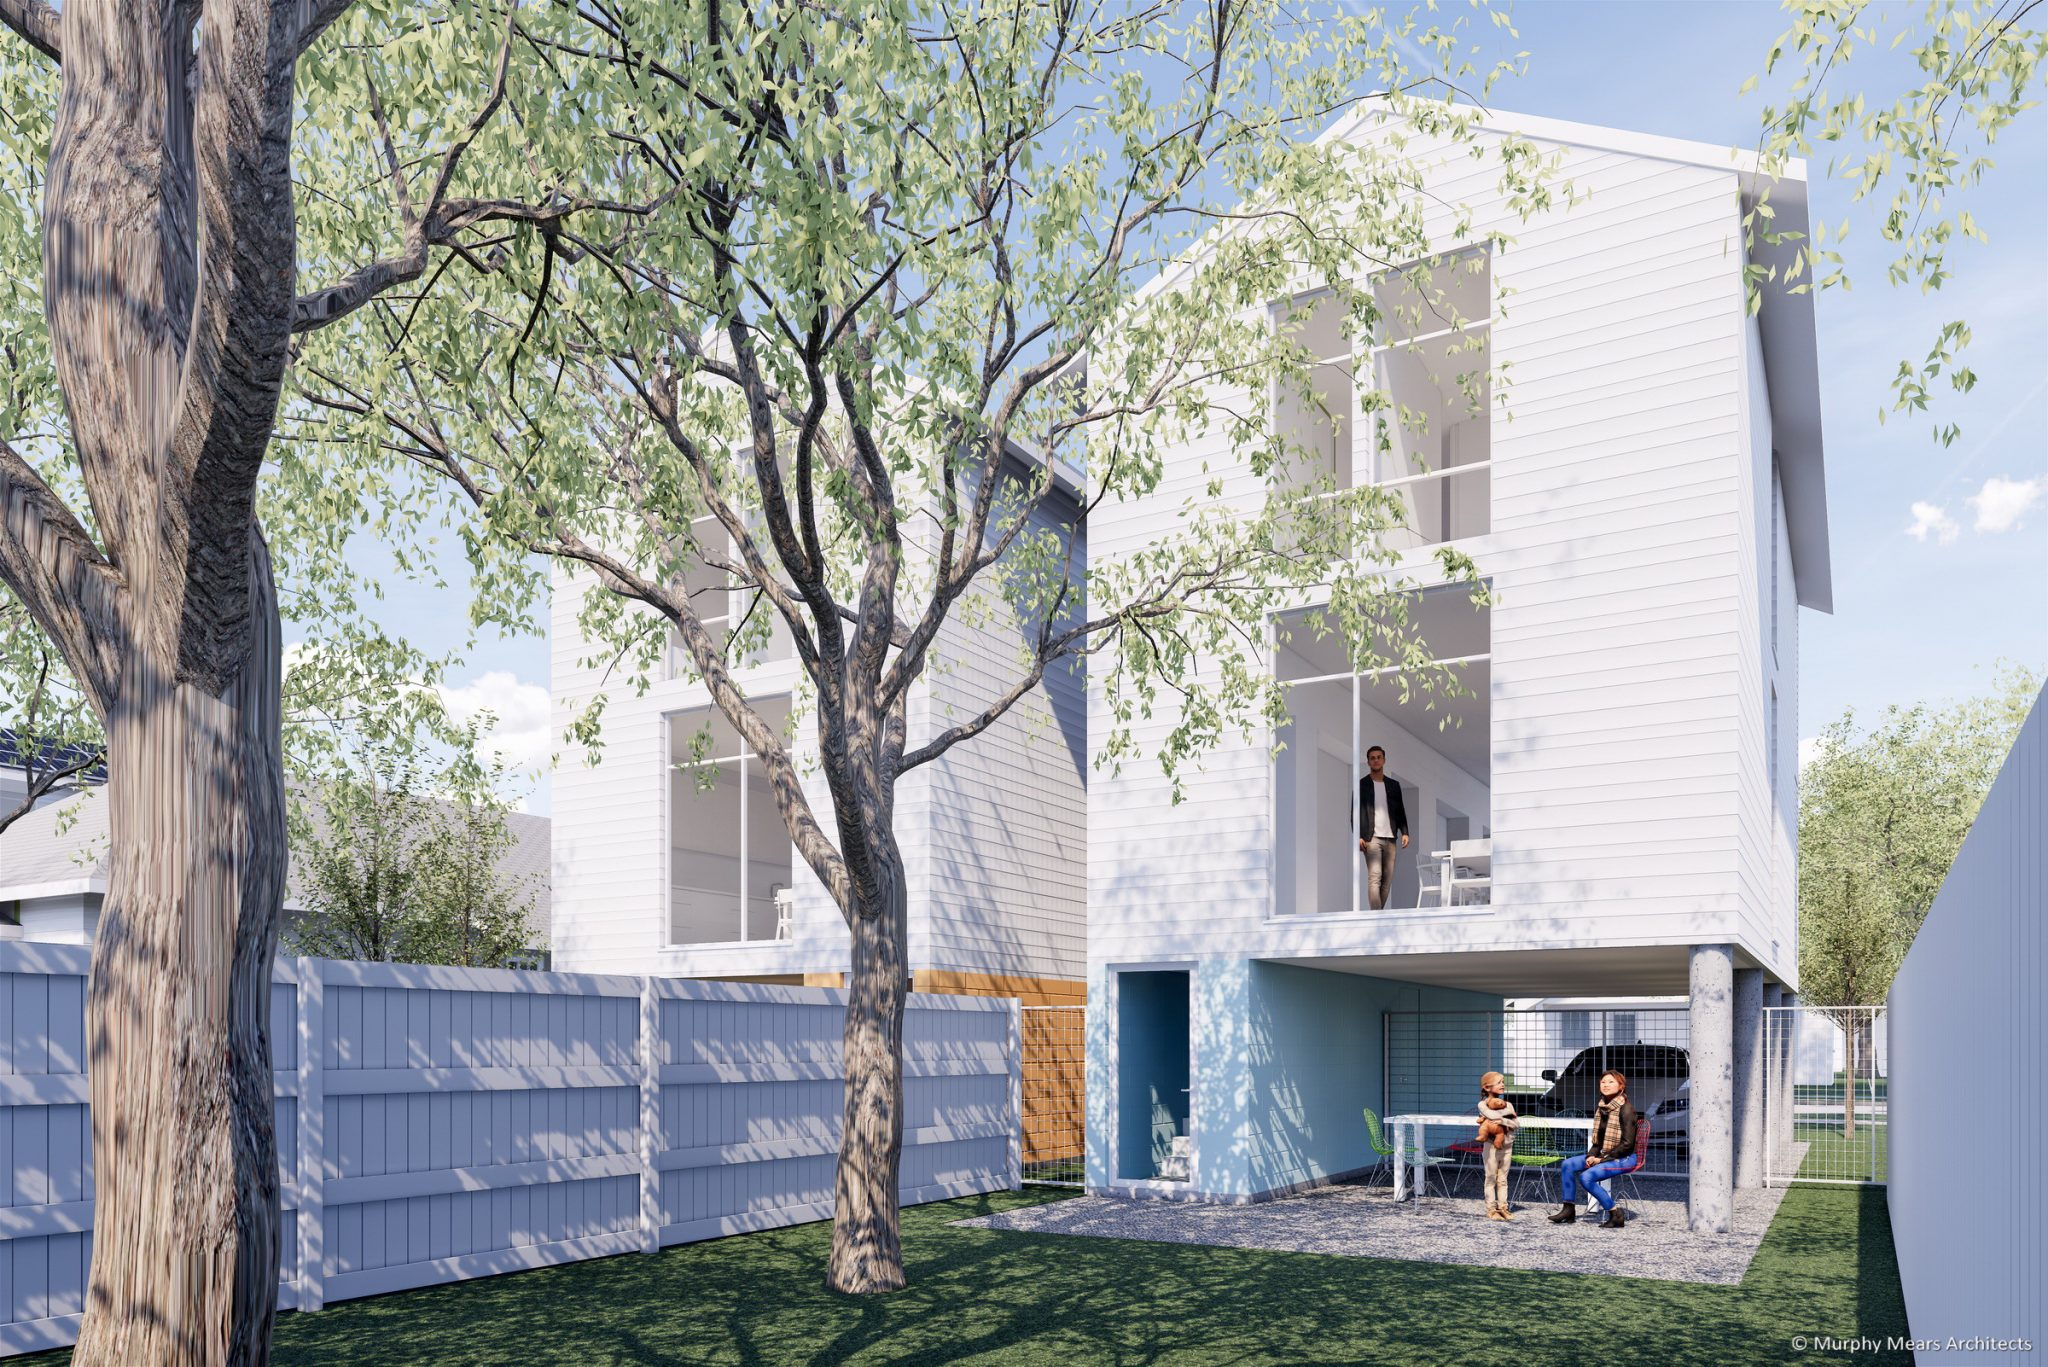 Affordable /Sustainable Housing Competition - City of Houston and AIA - Complete The Community - Backyard Breezeway.